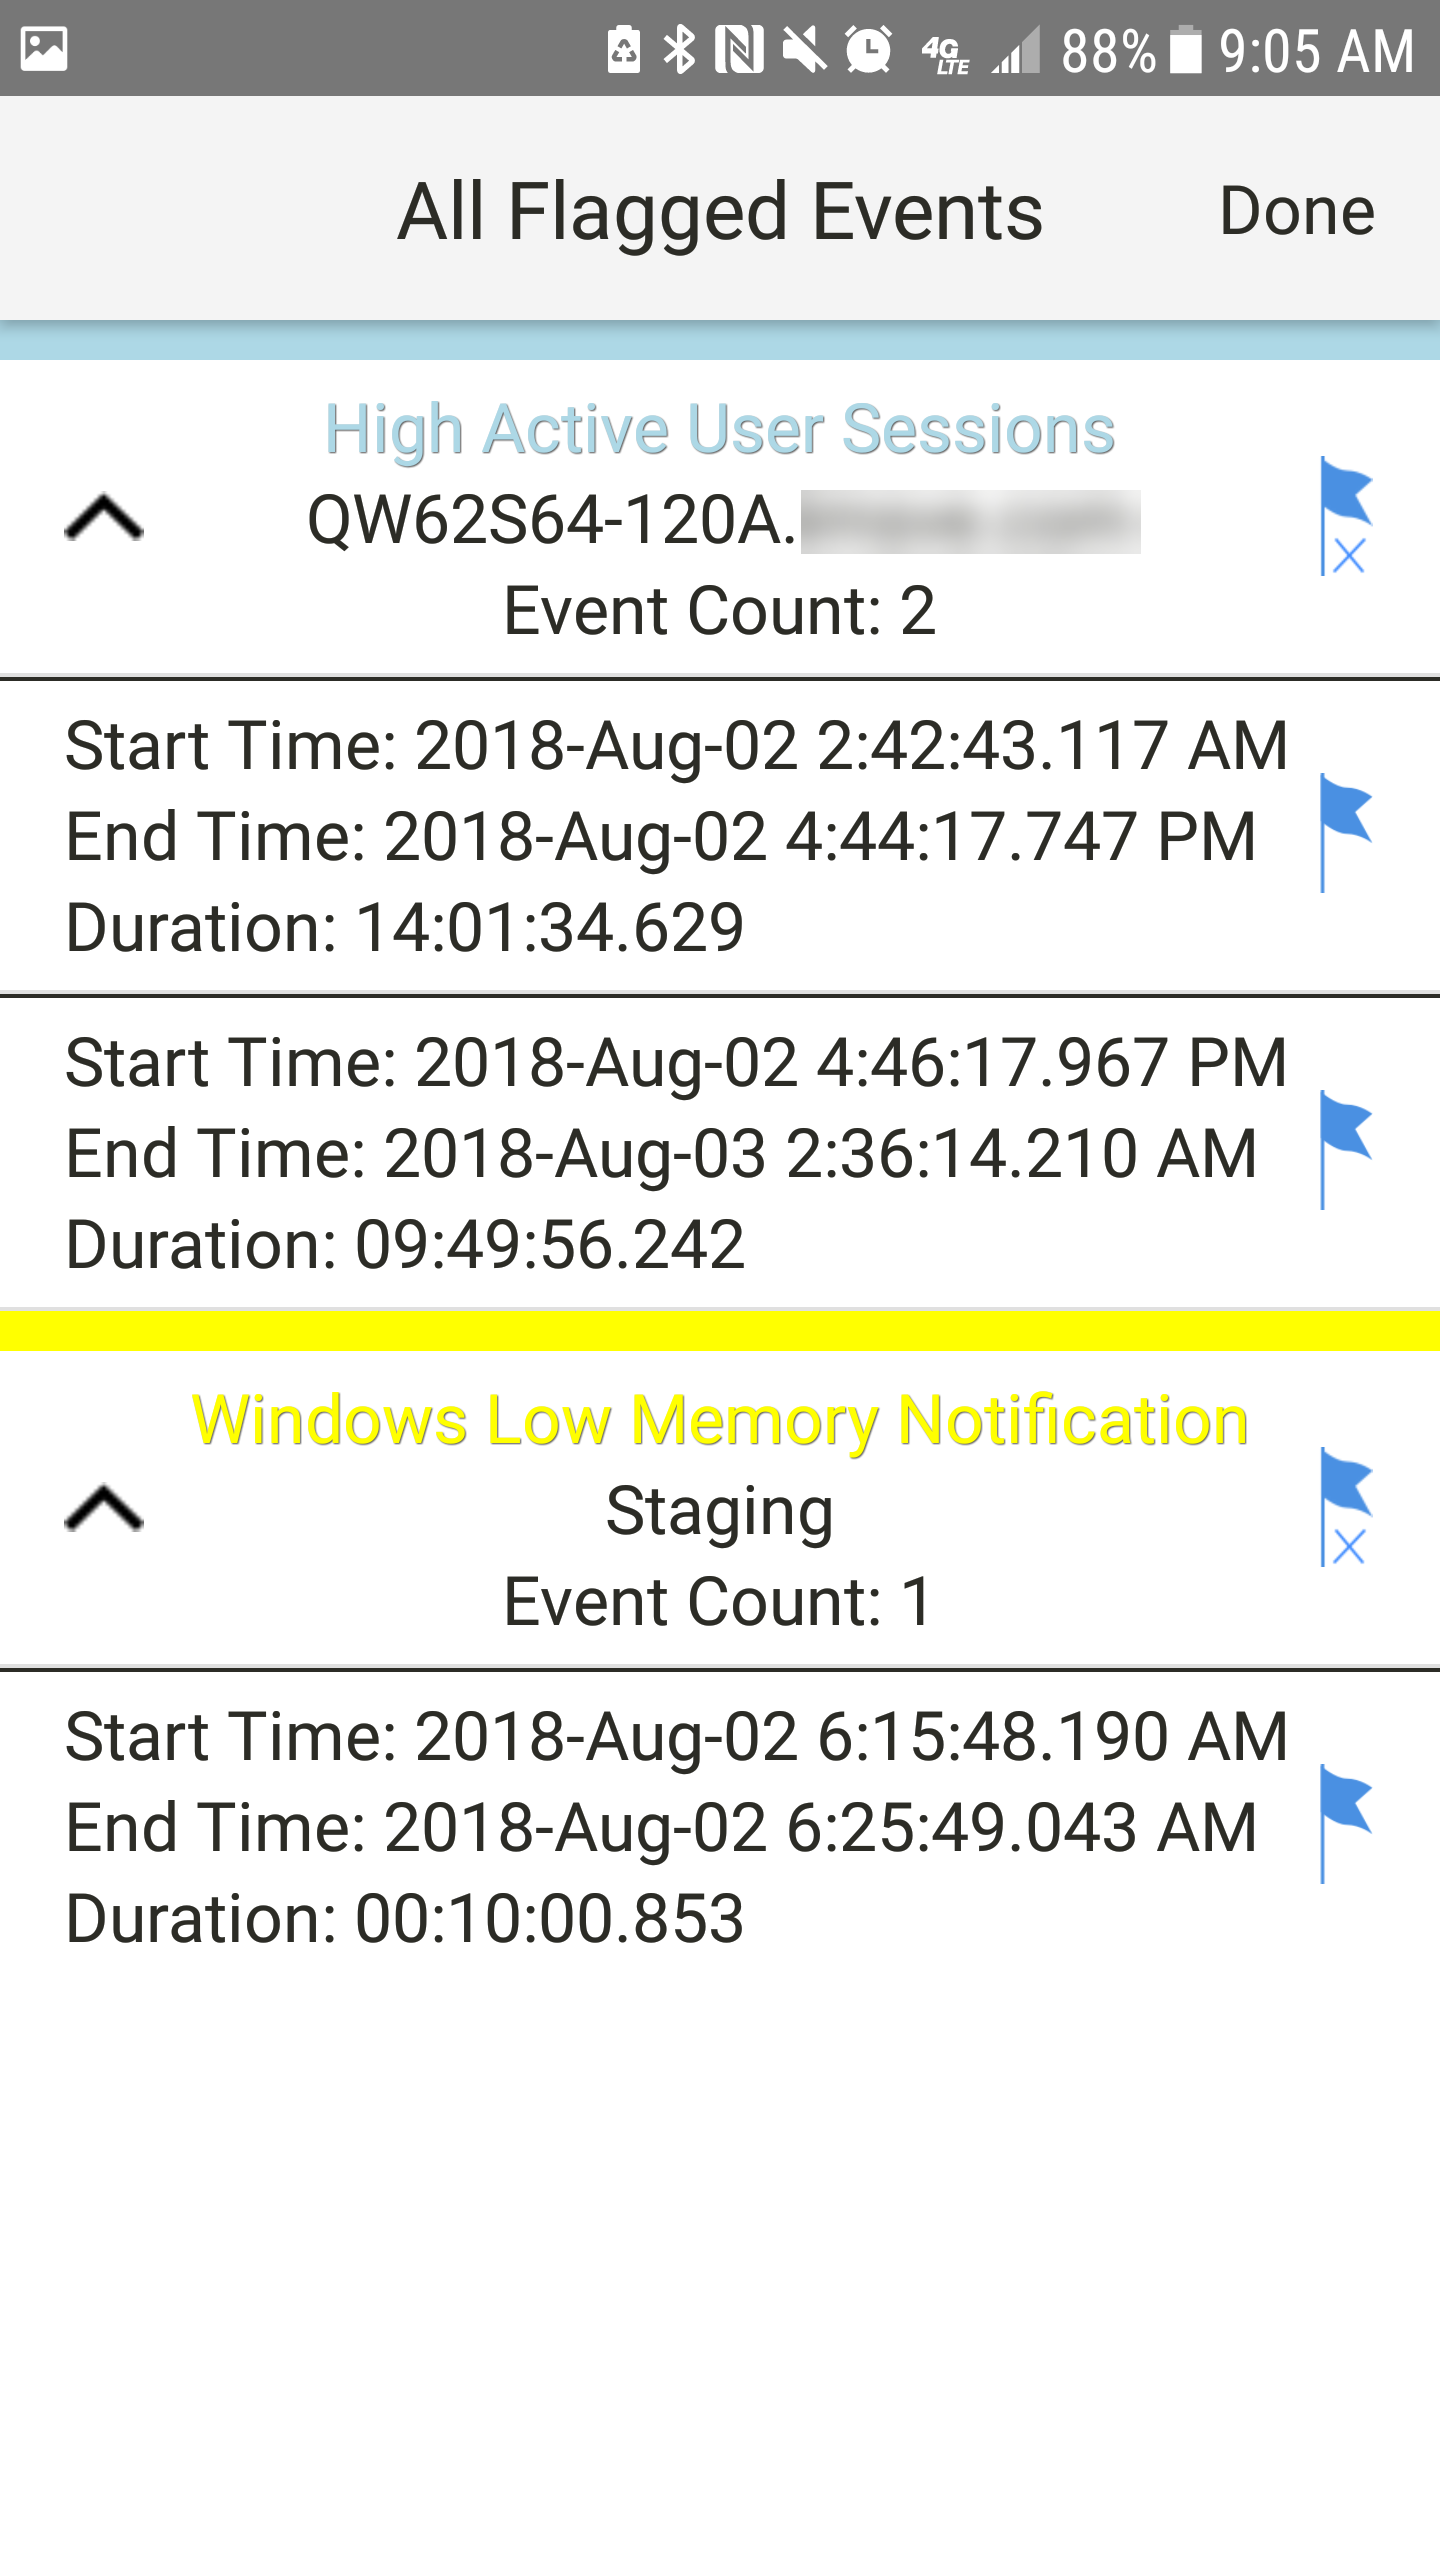 SentryOne App for Android All Flagged Events